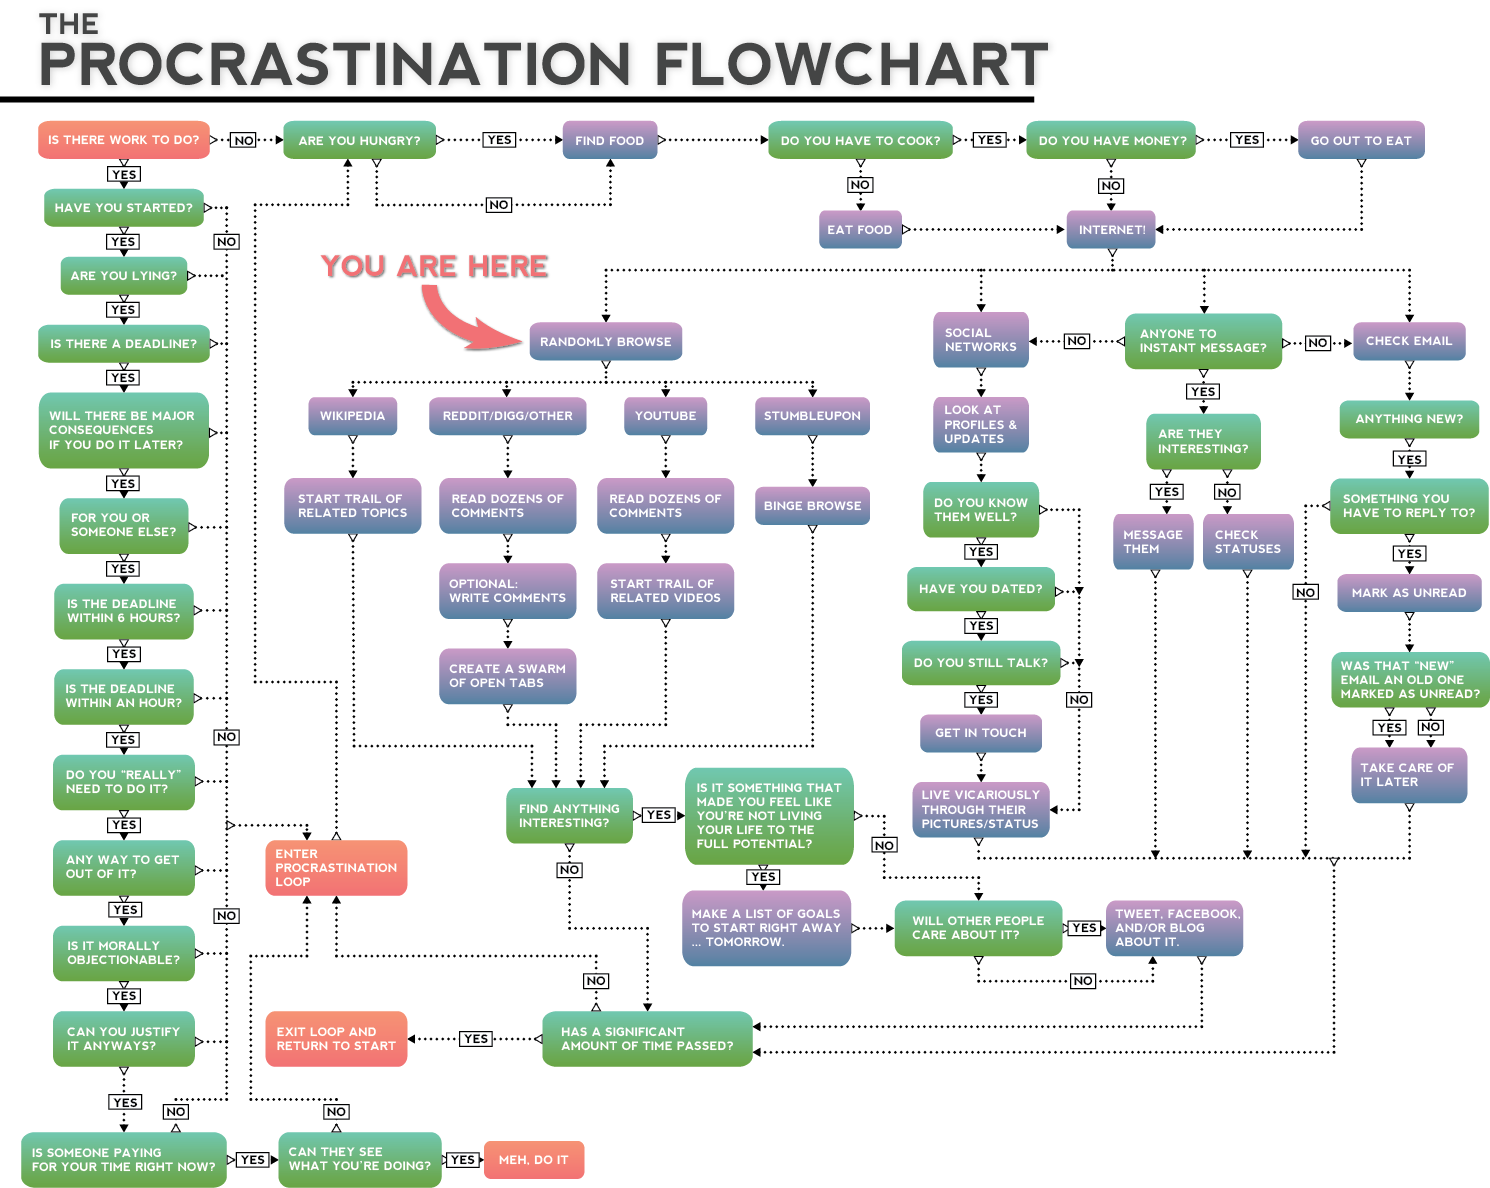 Flowchart for Proscrastination